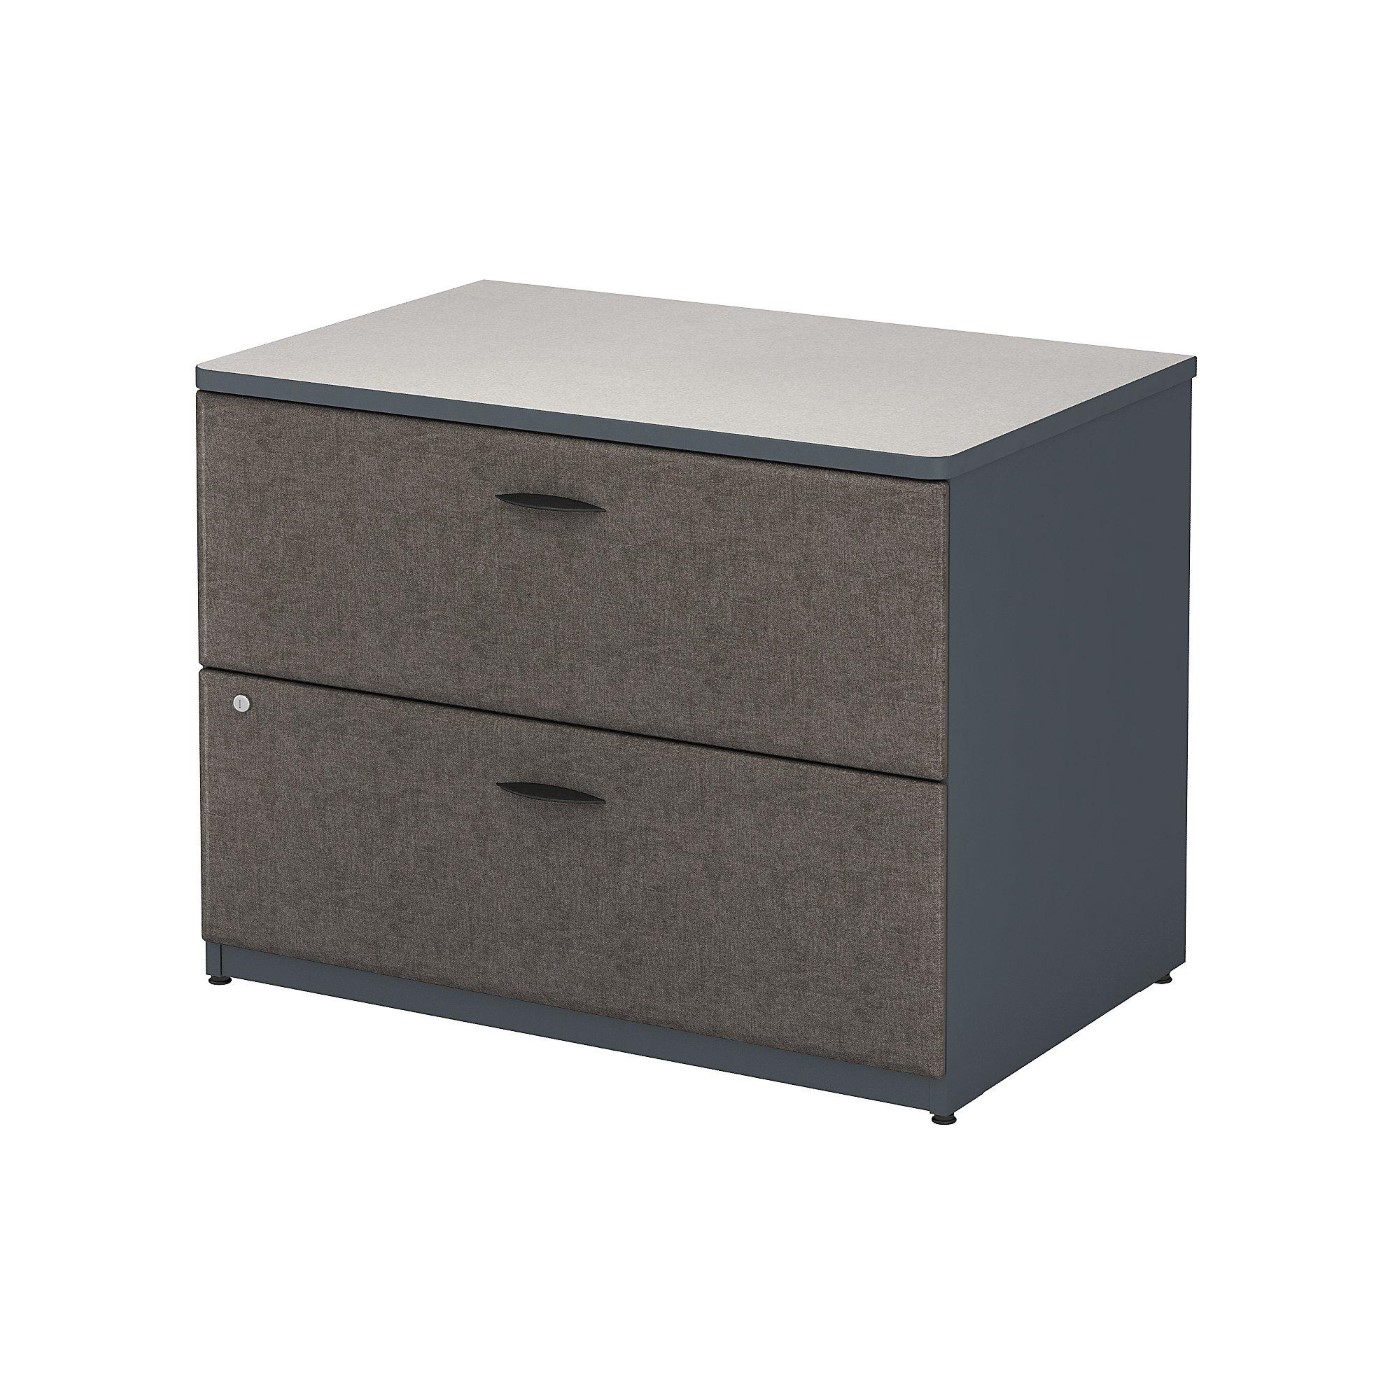 BUSH BUSINESS FURNITURE SERIES A 36W LATERAL FILE CABINET. FREE SHIPPING.  SALE DEDUCT 10% MORE ENTER '10percent' IN COUPON CODE BOX WHILE CHECKING OUT. ENDS 5-31-20.